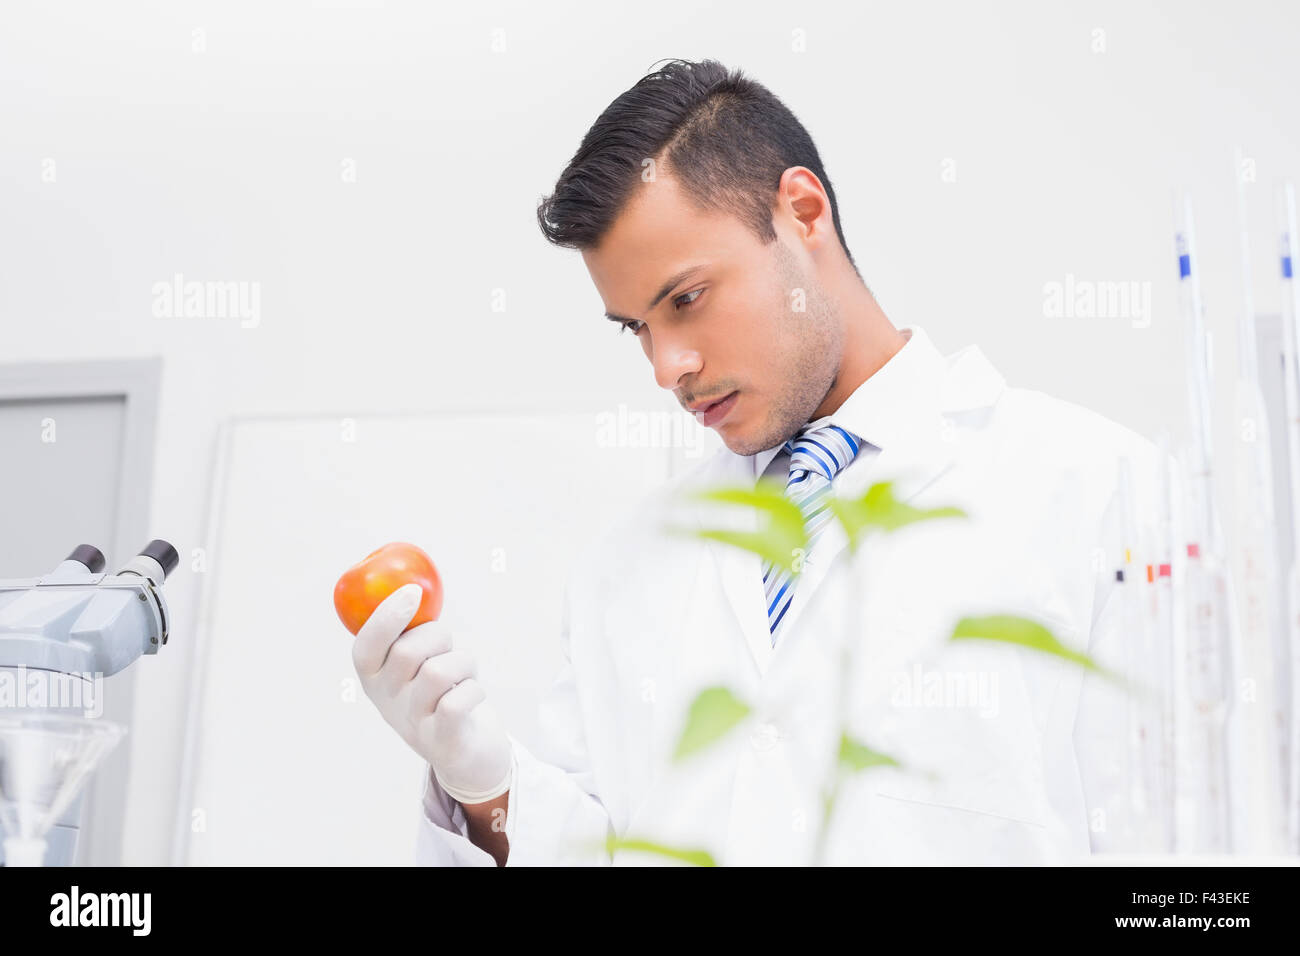 Perplex scientist looking at tomato - Stock Image